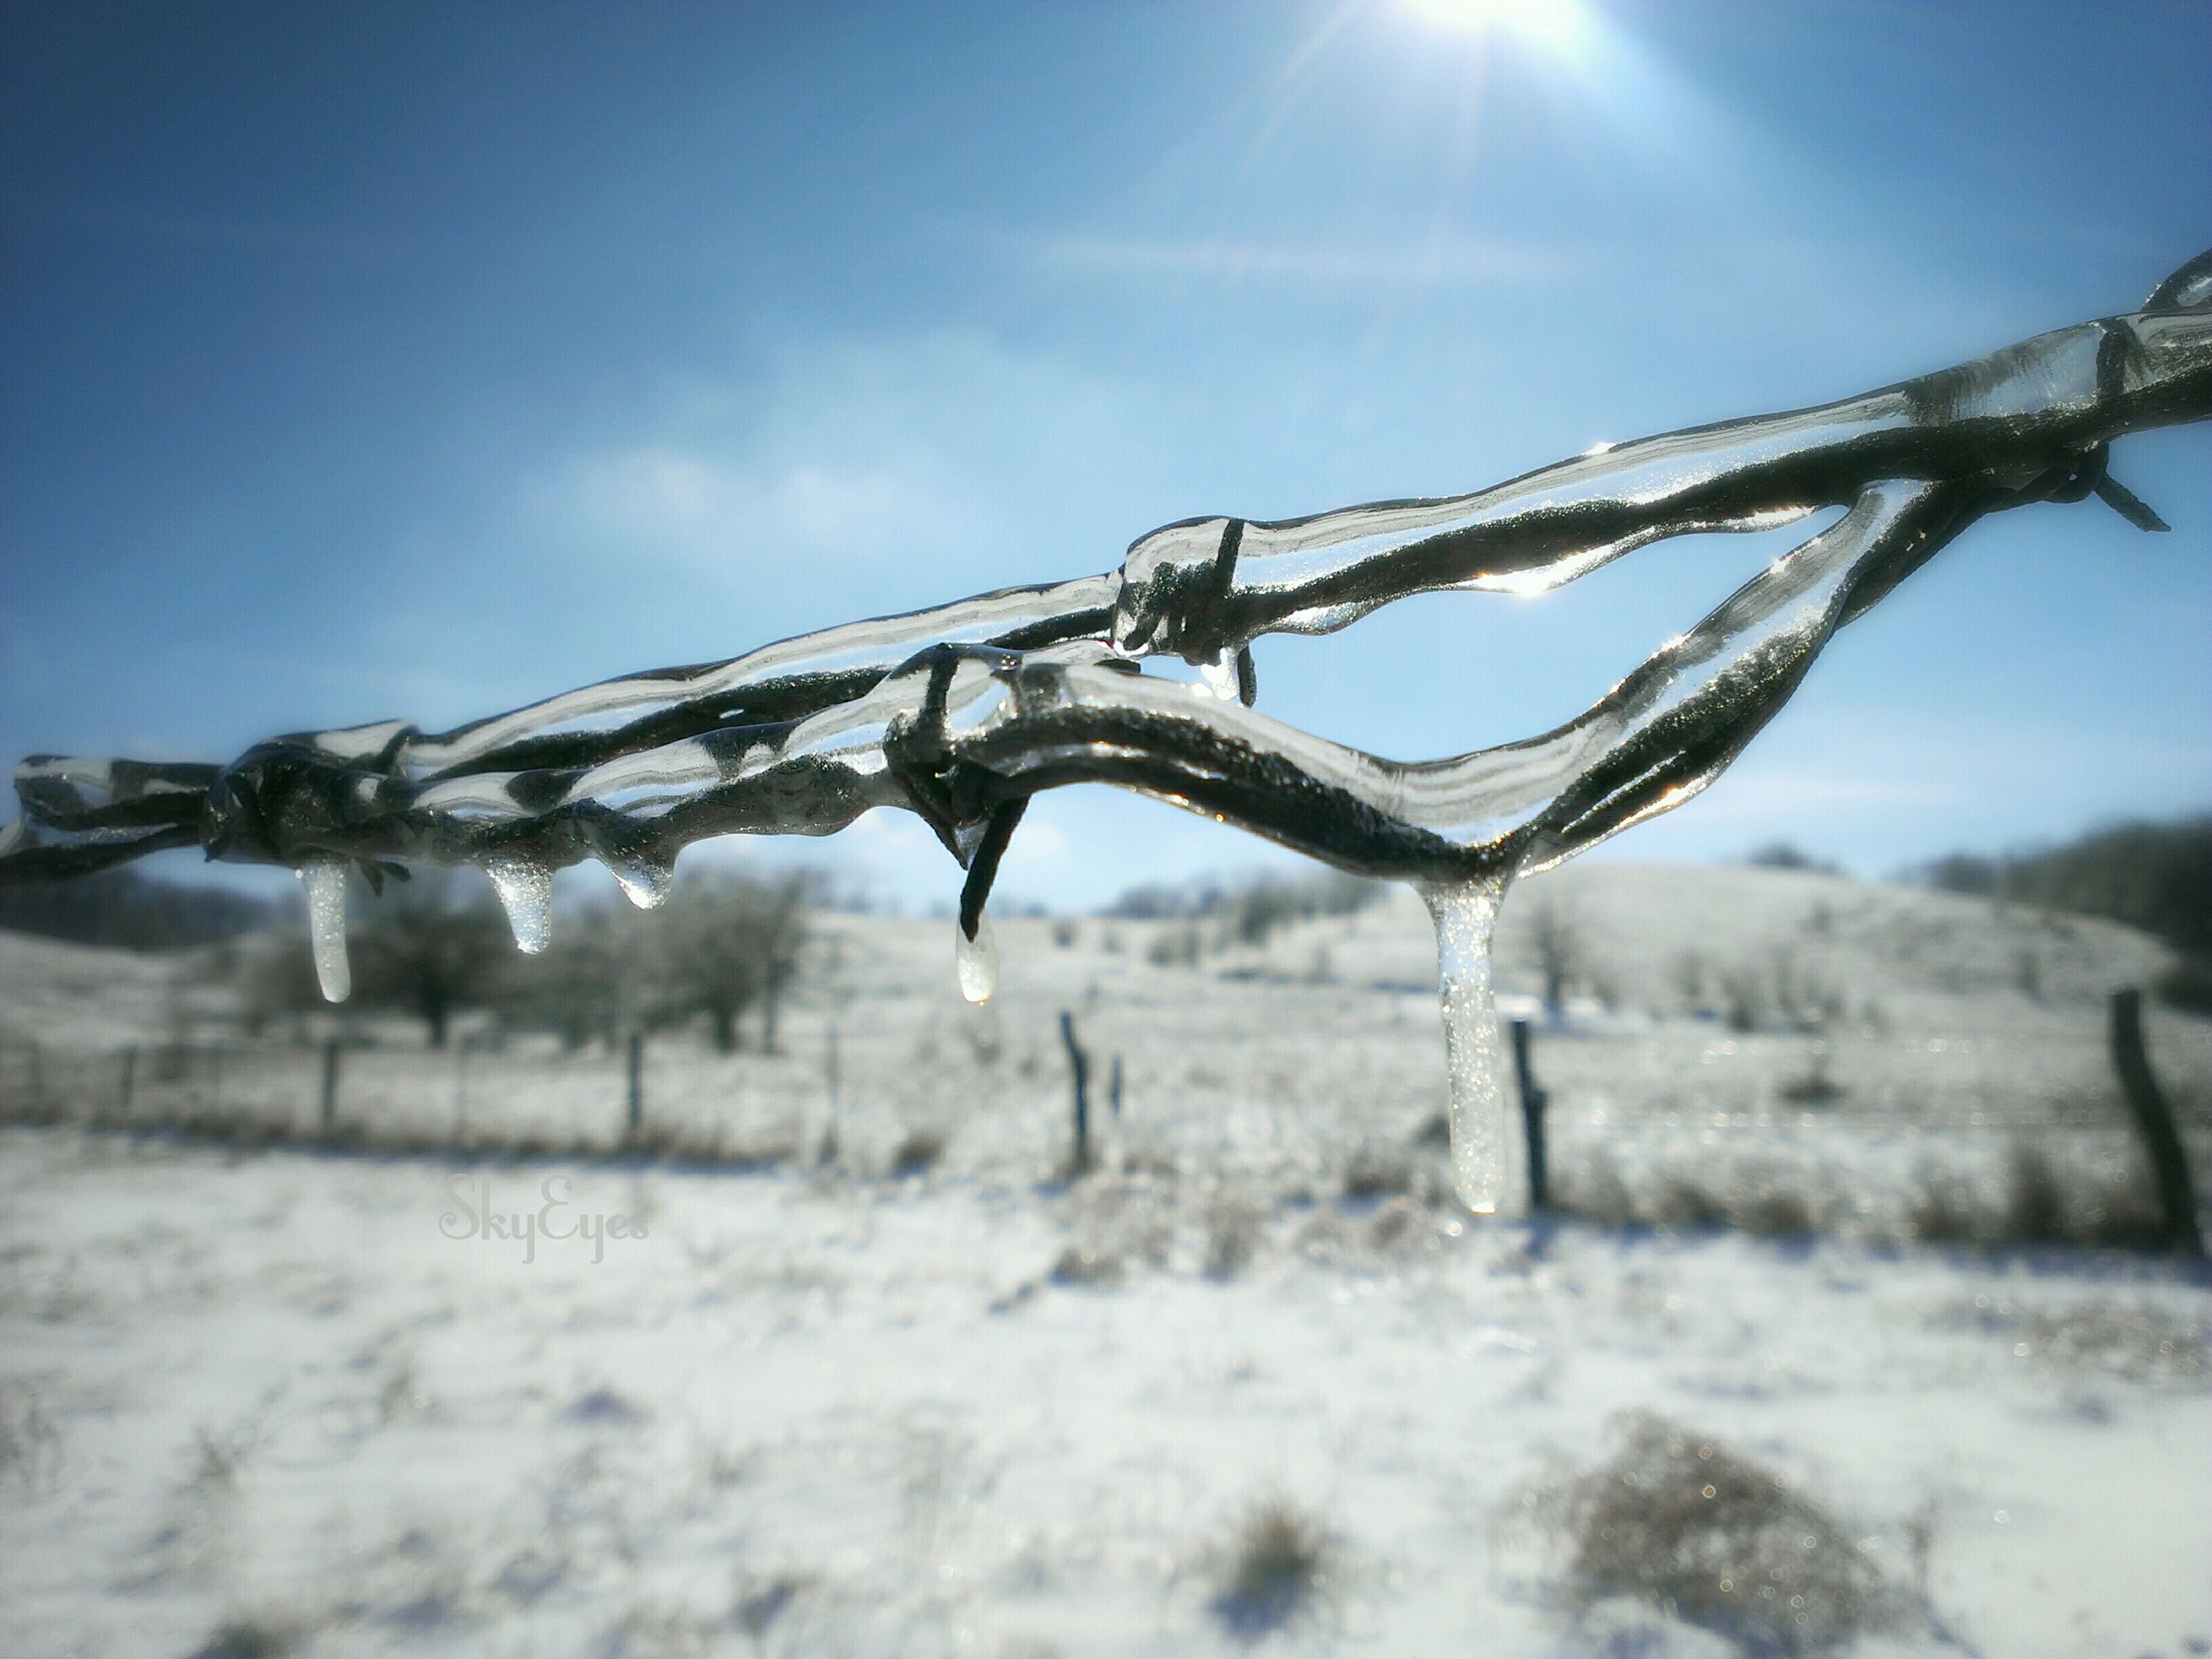 snow, winter, cold temperature, field, landscape, fence, season, sky, nature, weather, sunlight, covering, tranquility, frozen, protection, tranquil scene, day, rural scene, outdoors, no people